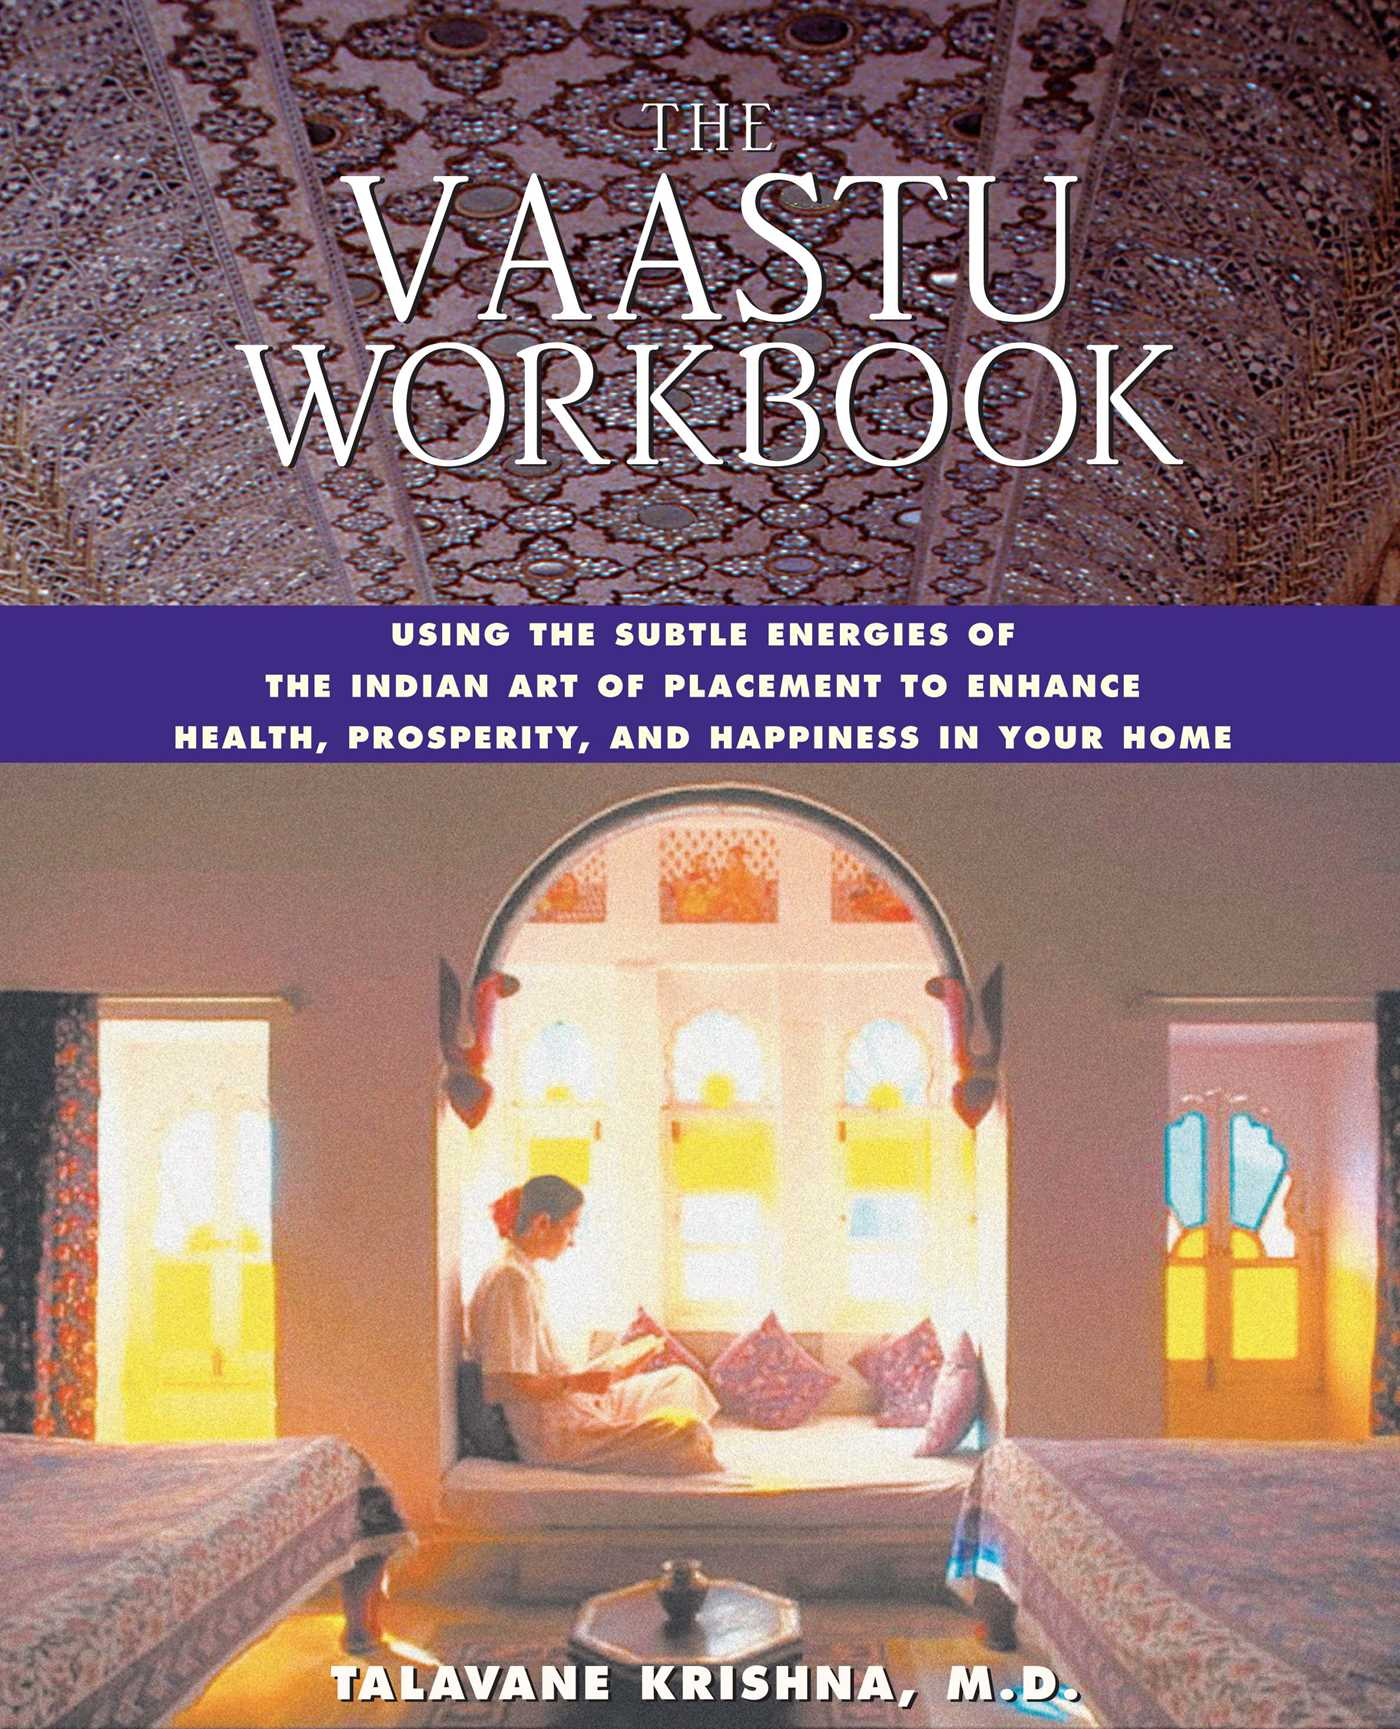 Vaastu-workbook-9780892819409_hr